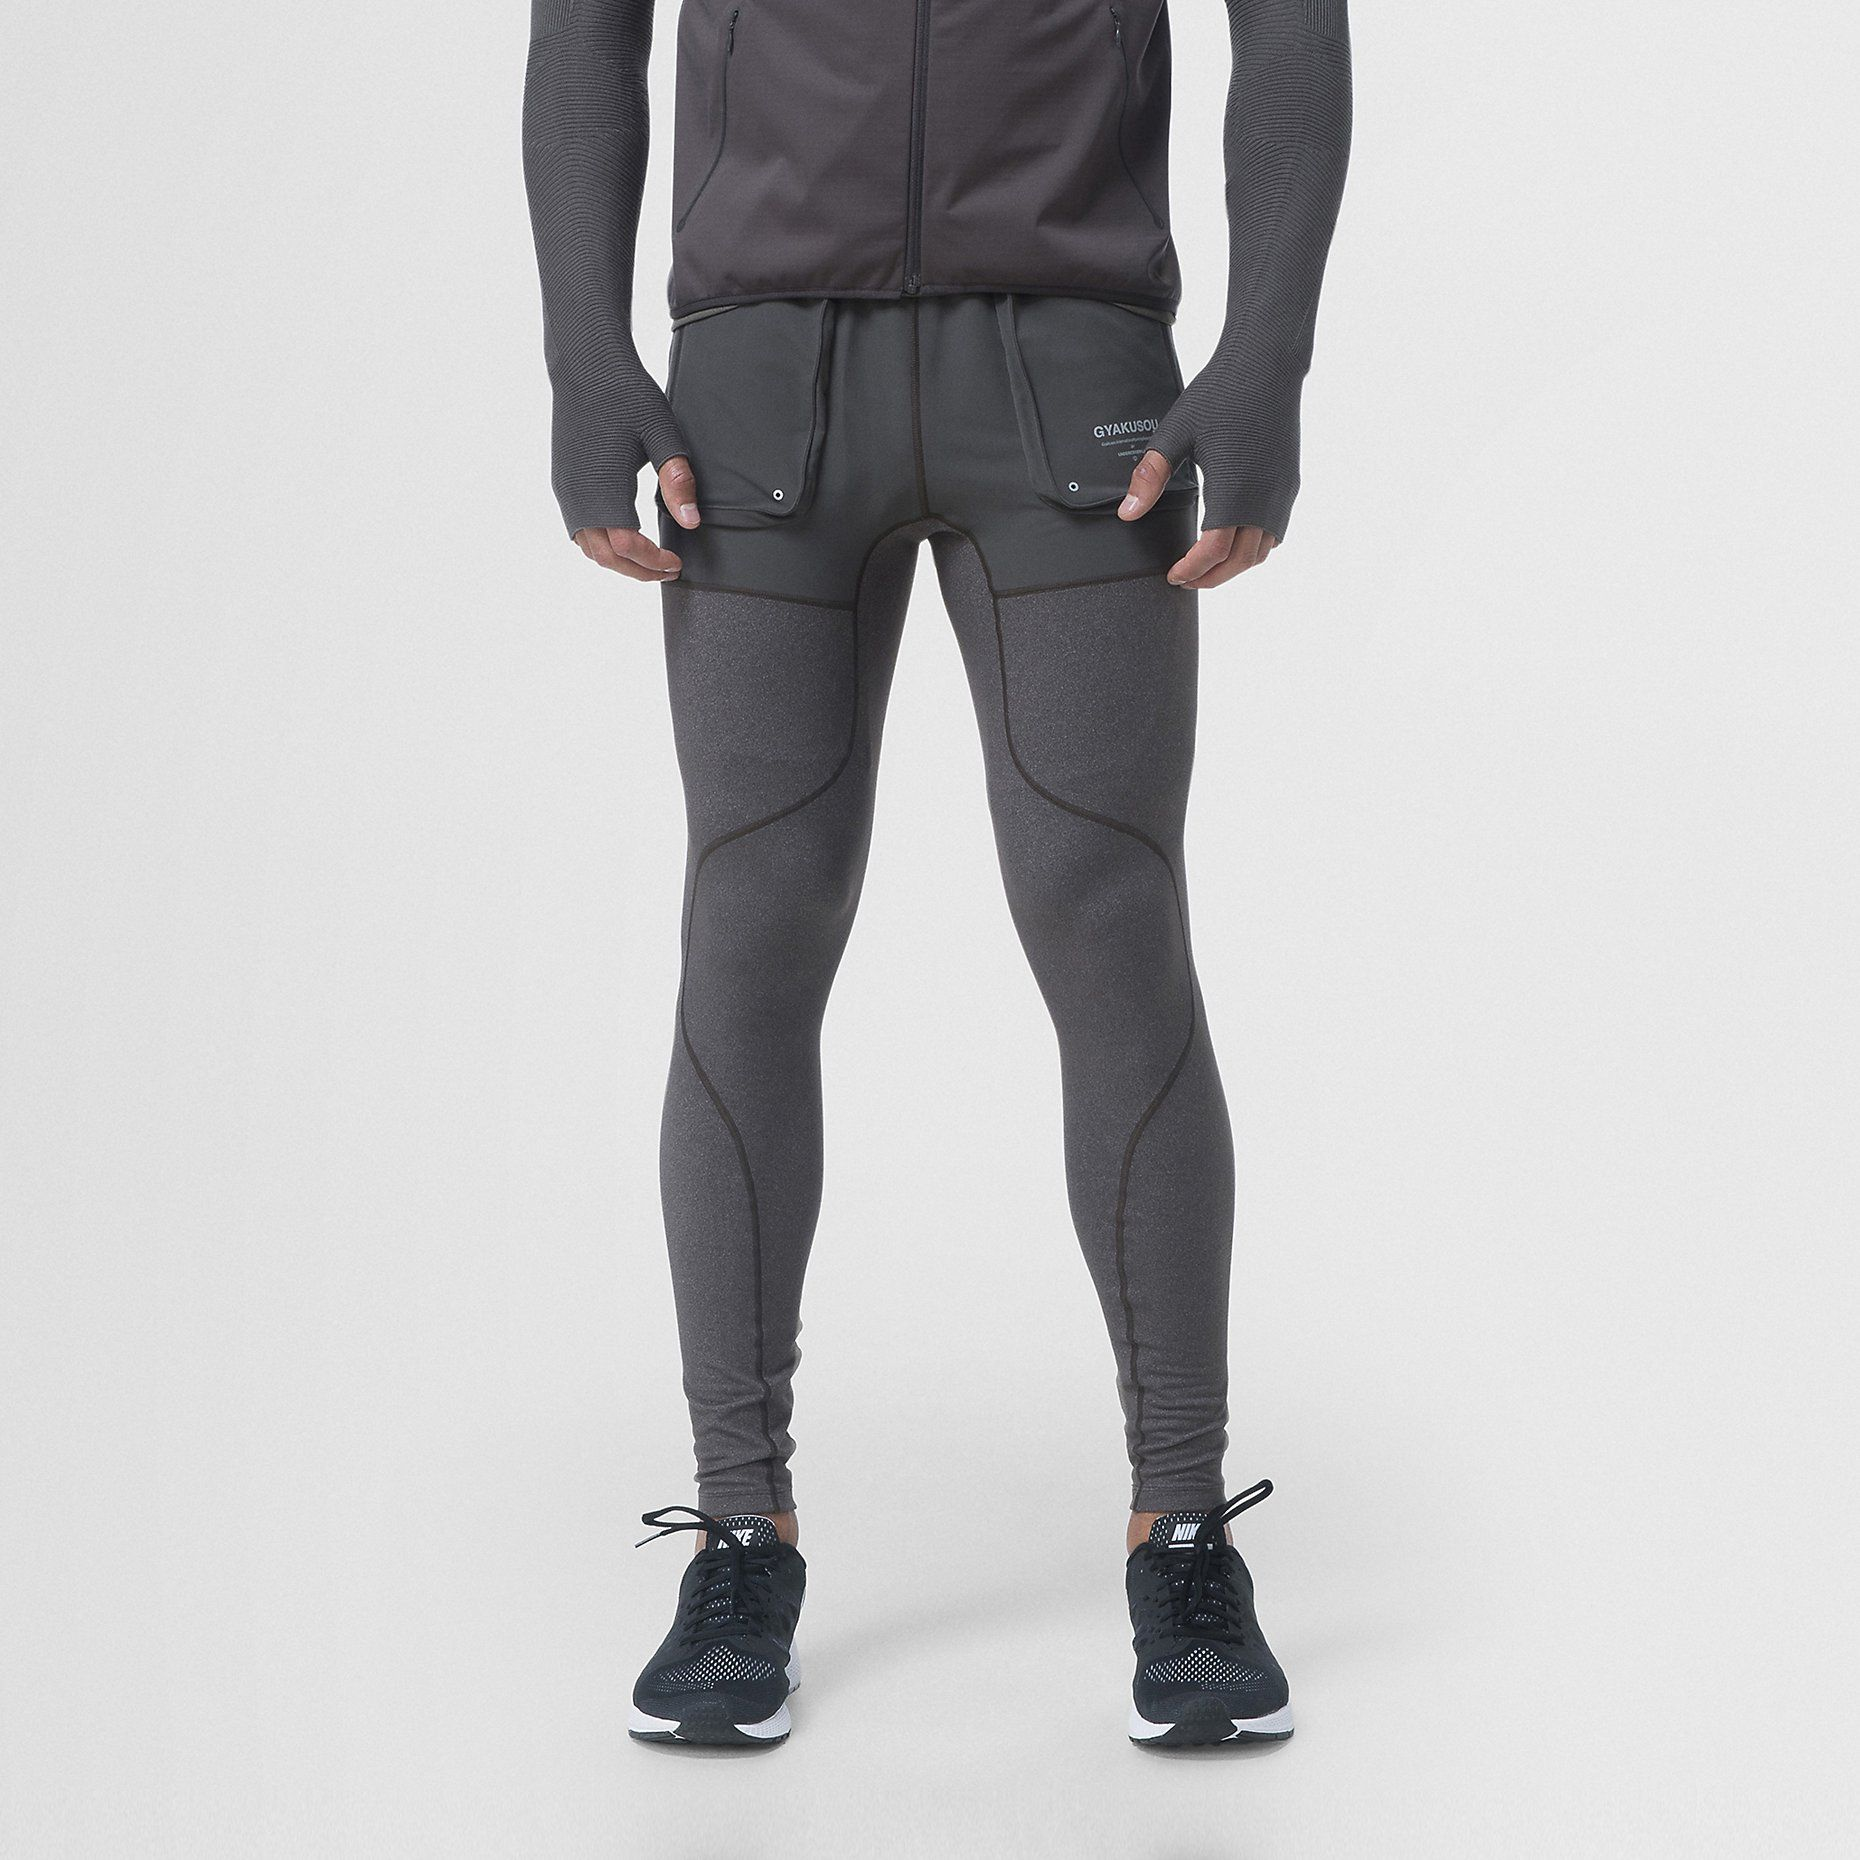 d88f0c7c0a Nike x Undercover Gyakusou Dri-FIT Utility Long Men's Running Tights. Nike  Store